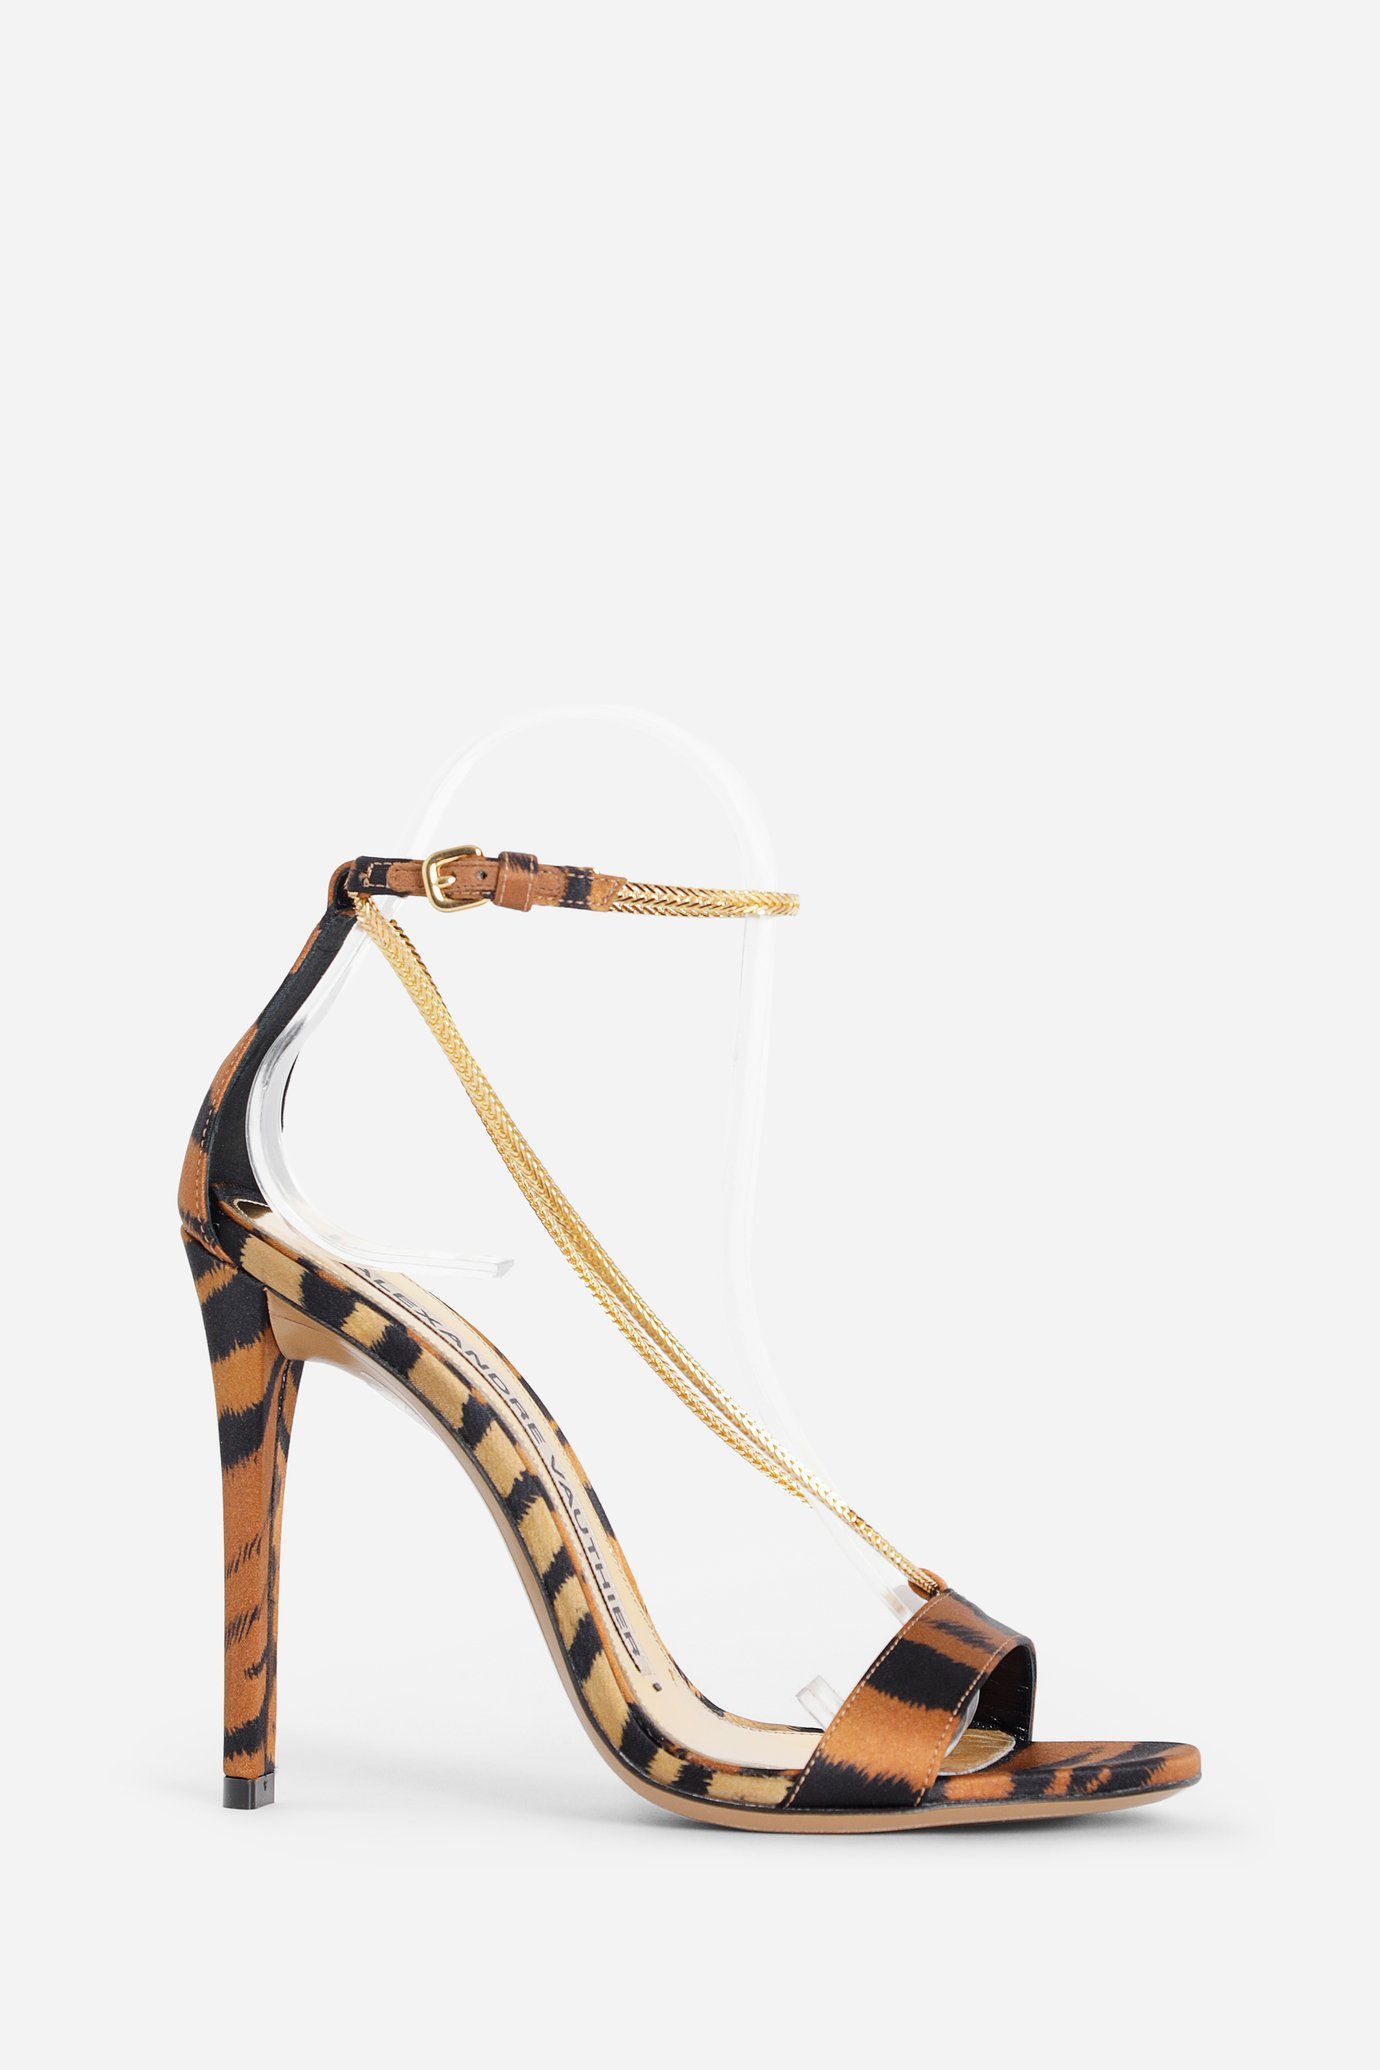 Image of Alexandre Vauthier Sandals